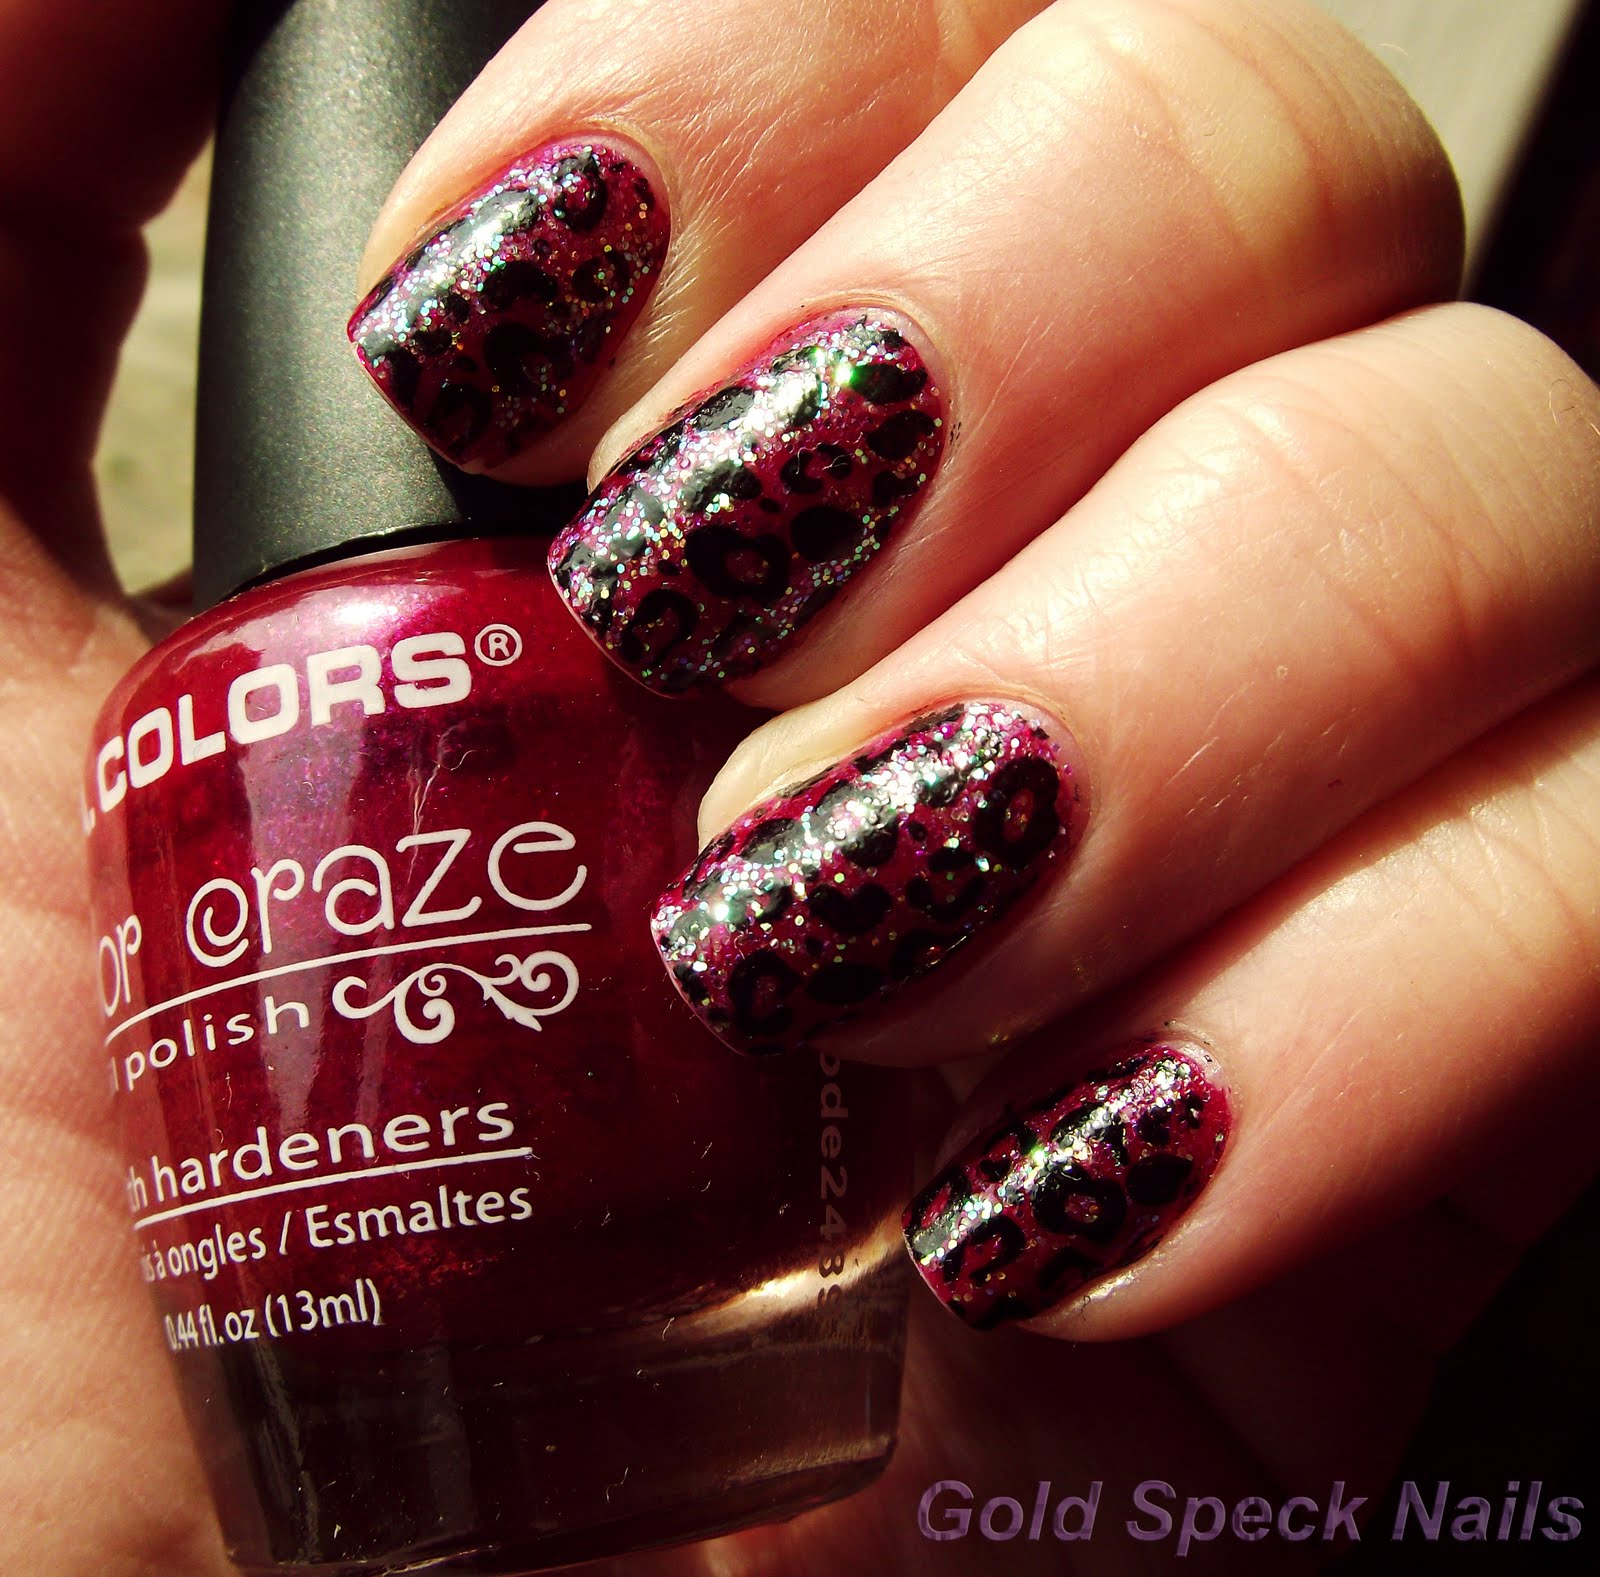 Gold Speck Nails: May 2011